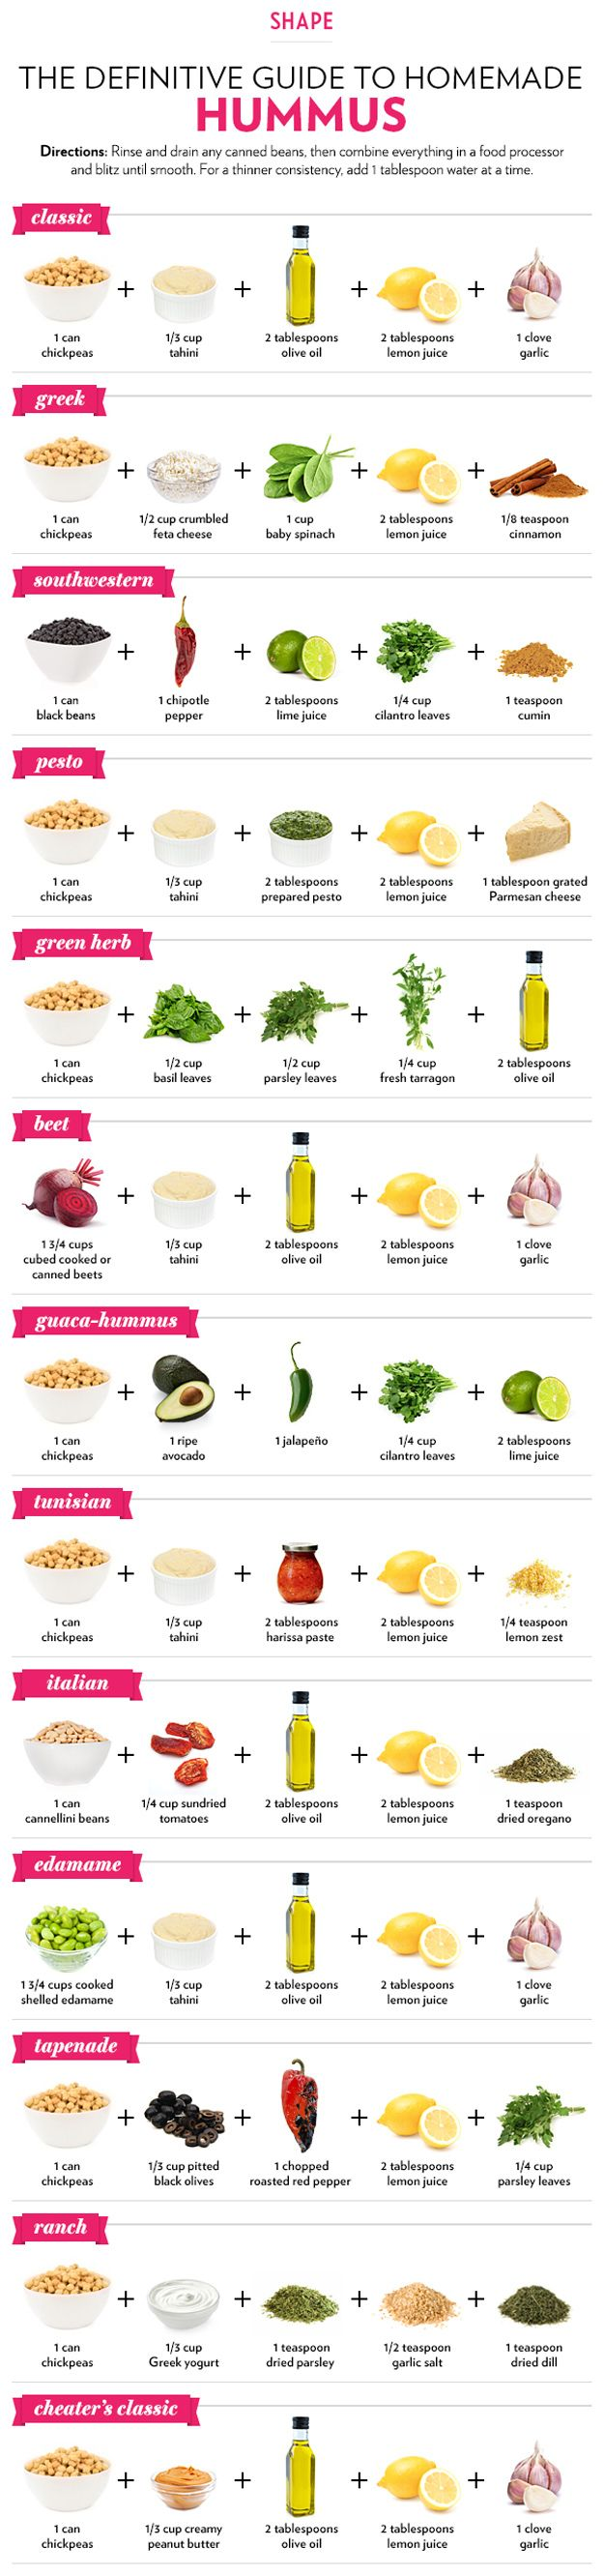 Learn how to make all kinds of hummus with this chart.